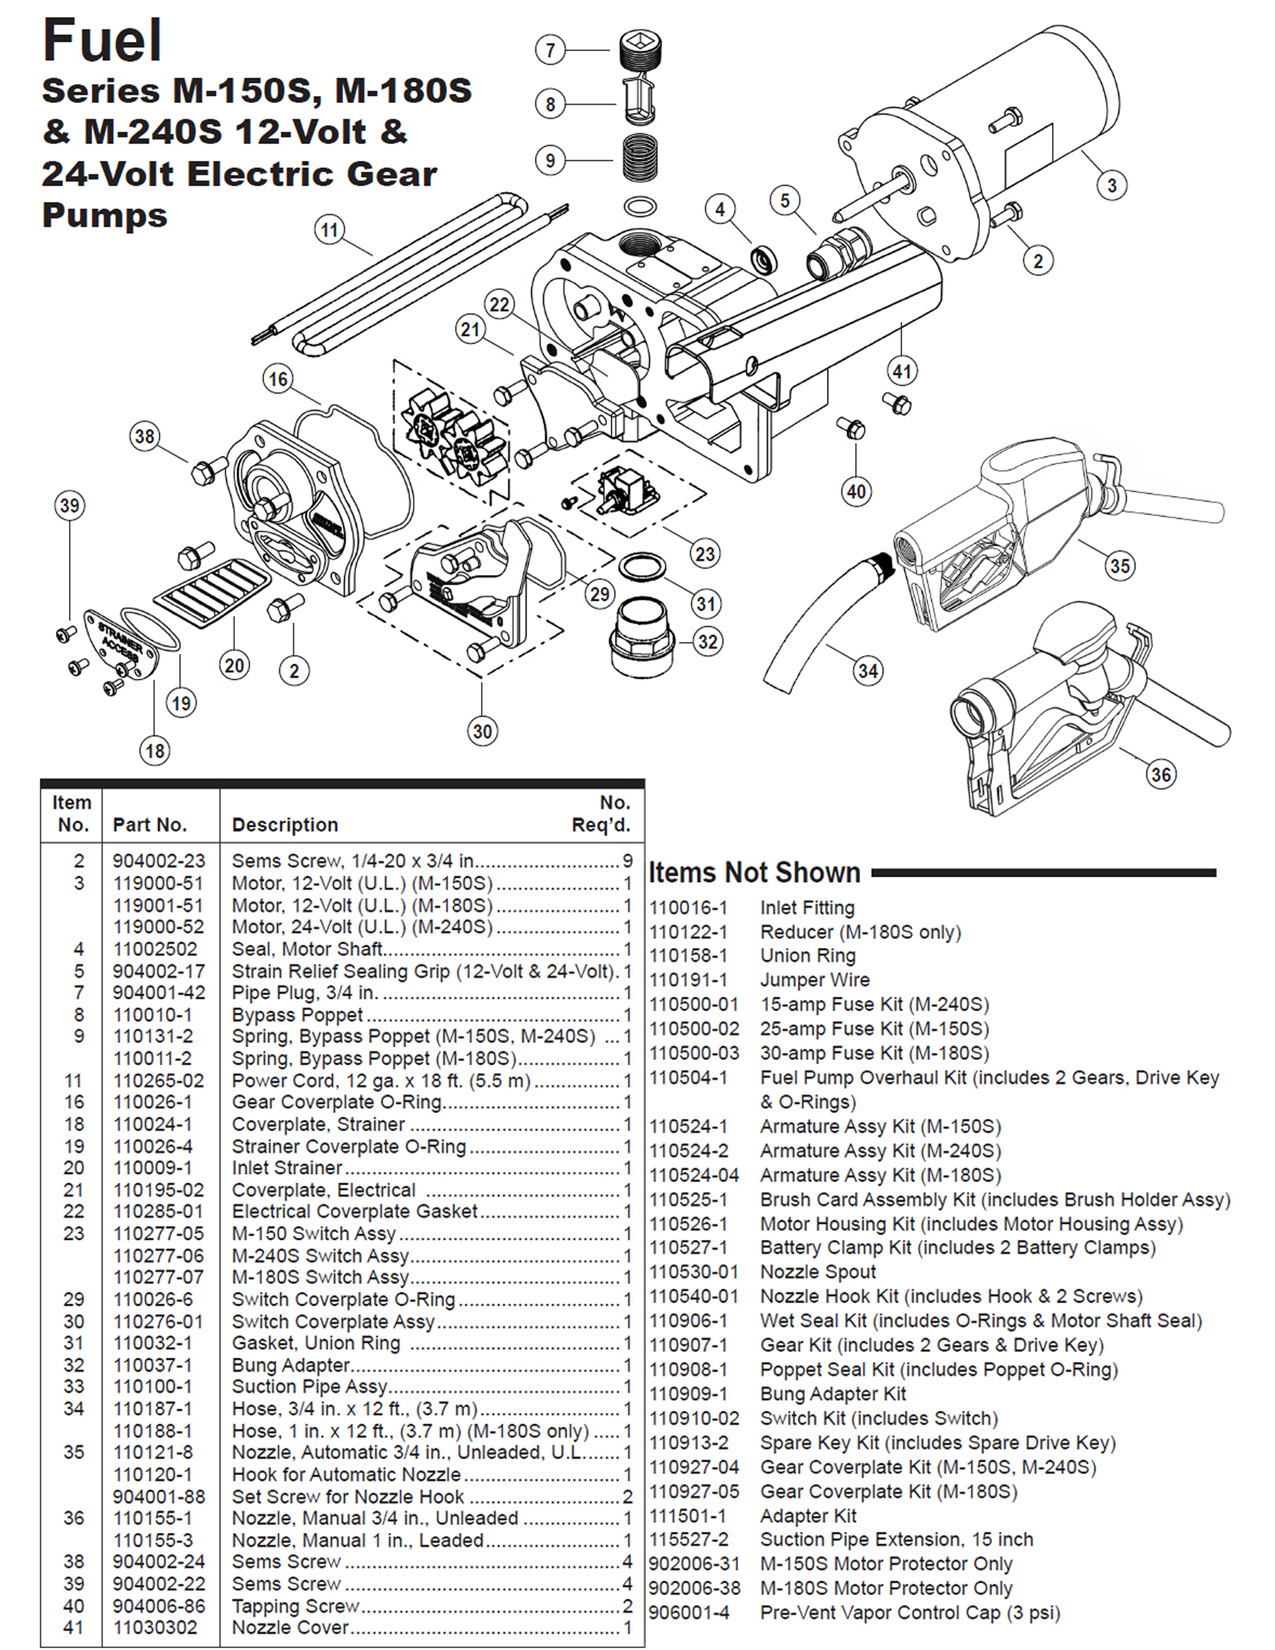 gpi fuel pump wiring diagram Collection-Gpi 12v Economy Model Fuel Pump Parts List Diagram Tuthill Transfer Wiring Diagram Full 1-i